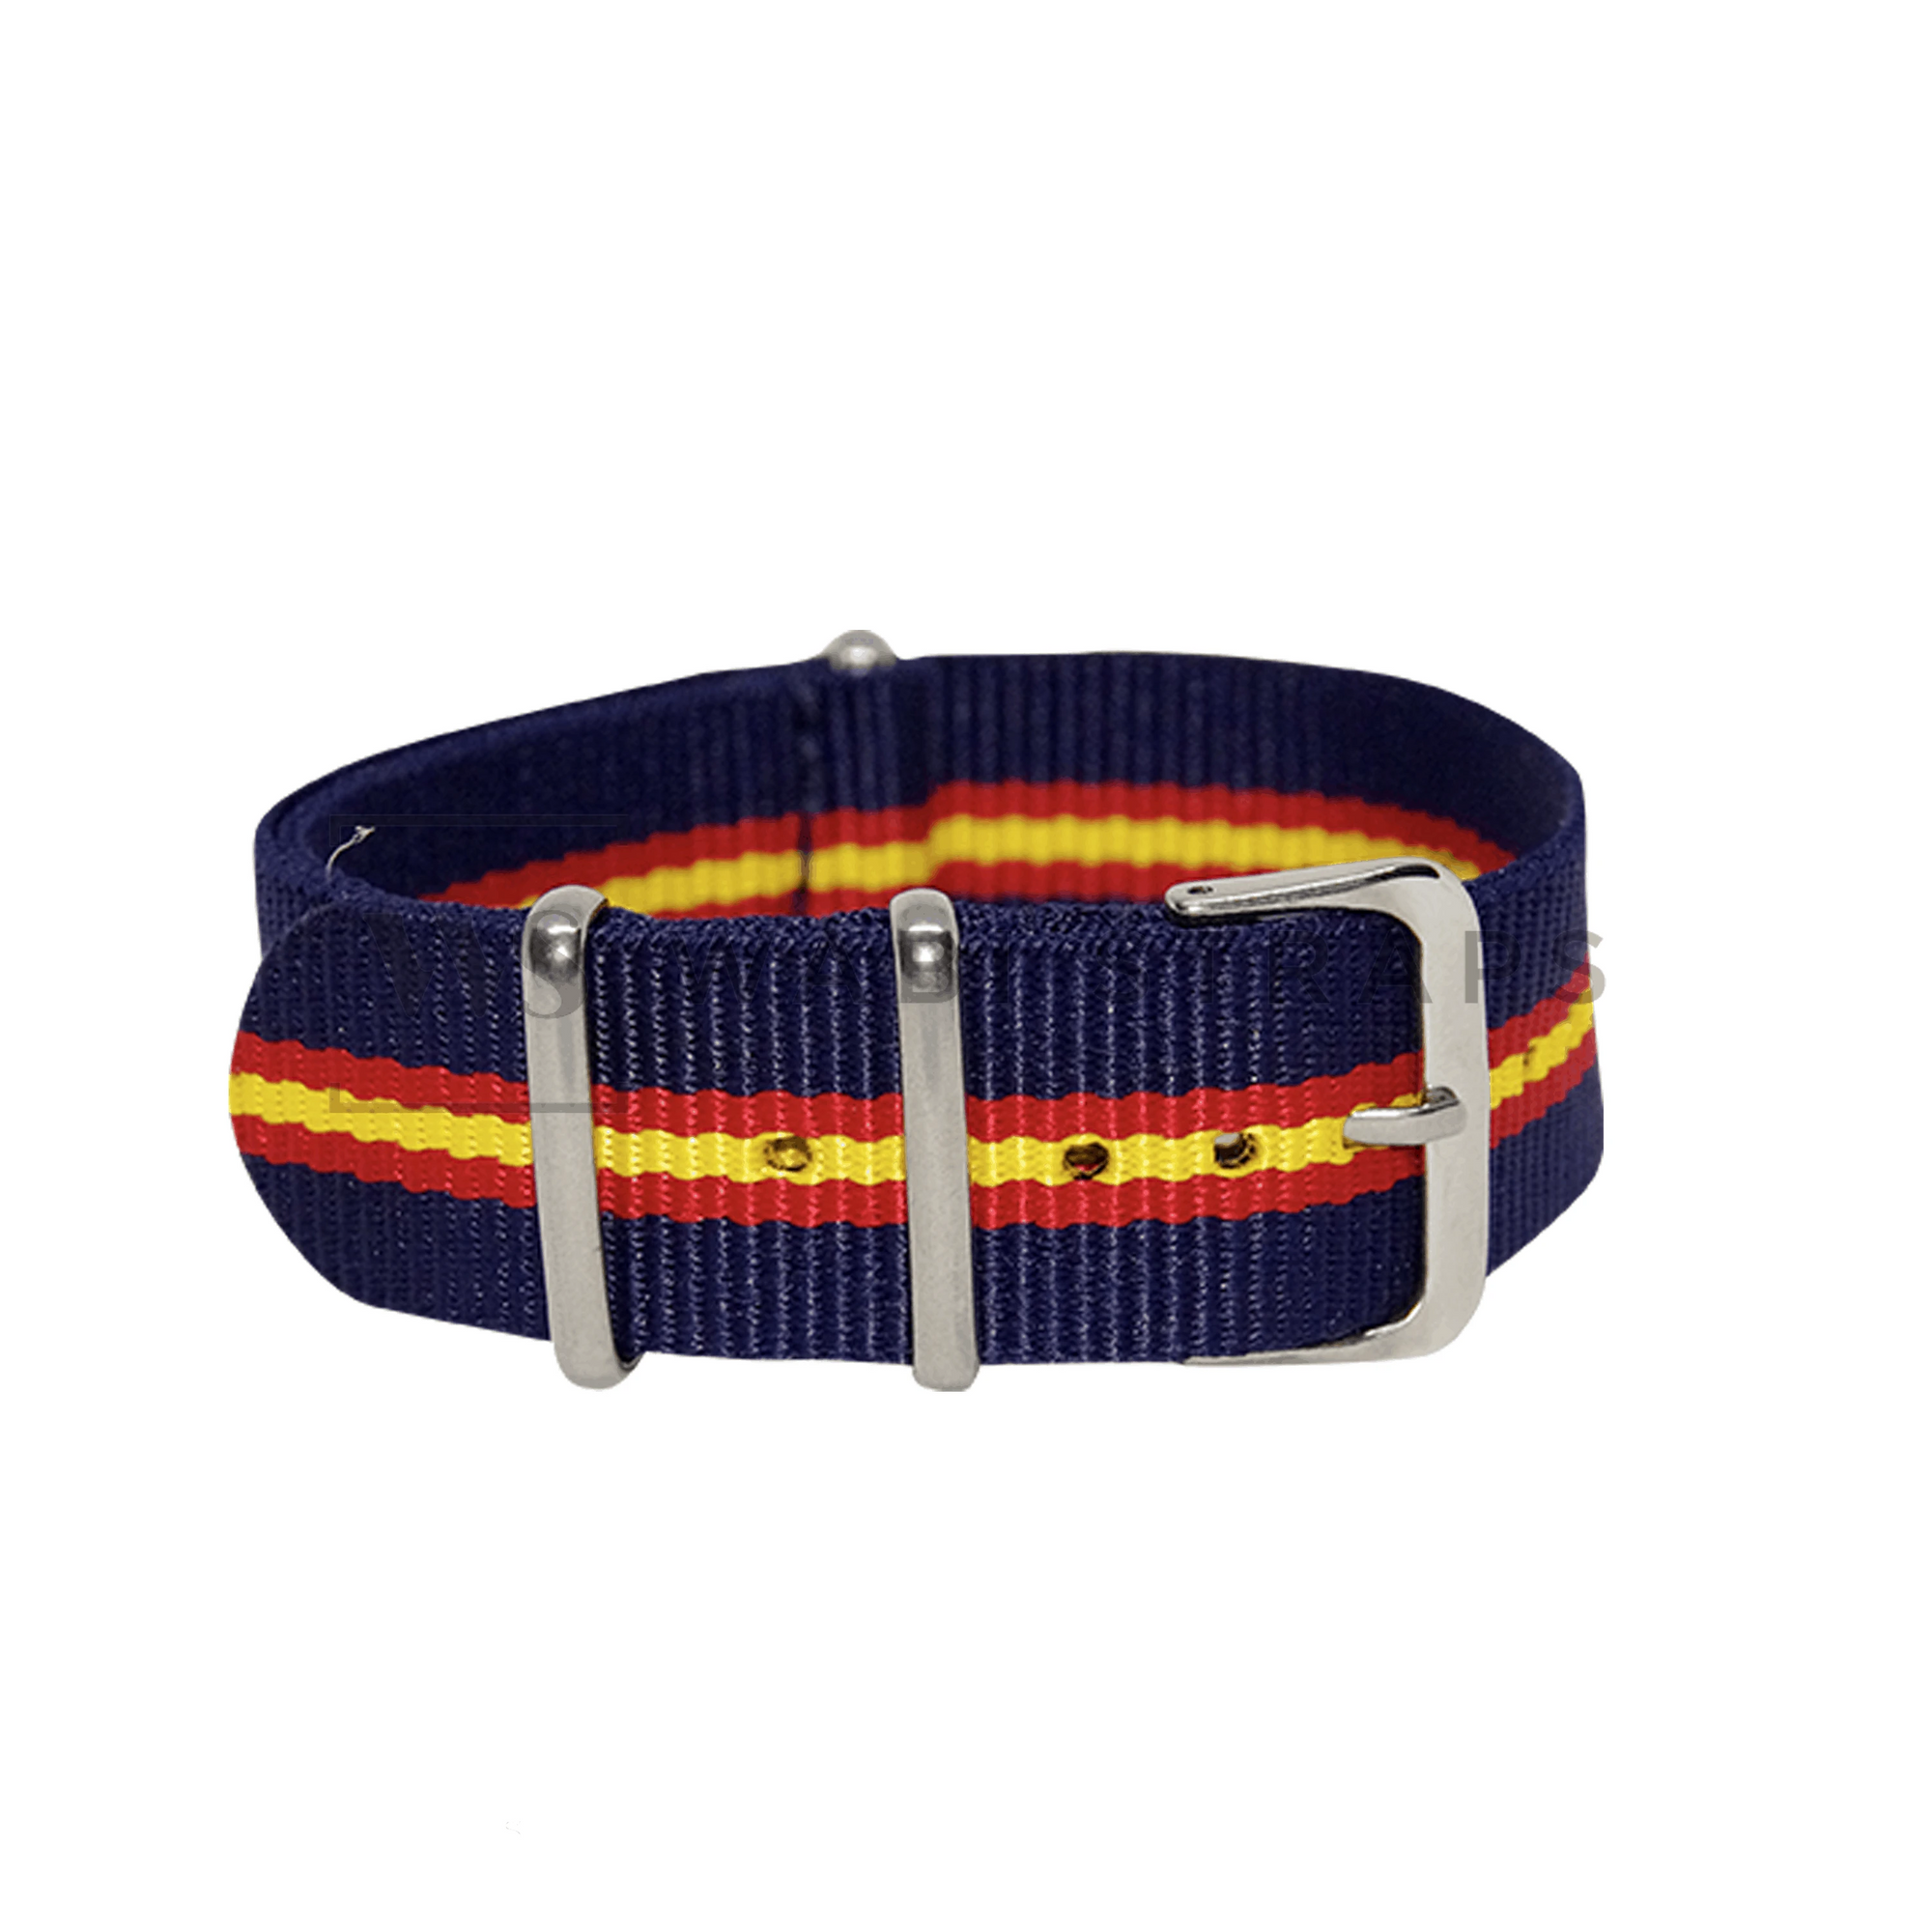 Blue, Red & Yellow Regimental NATO Strap Round